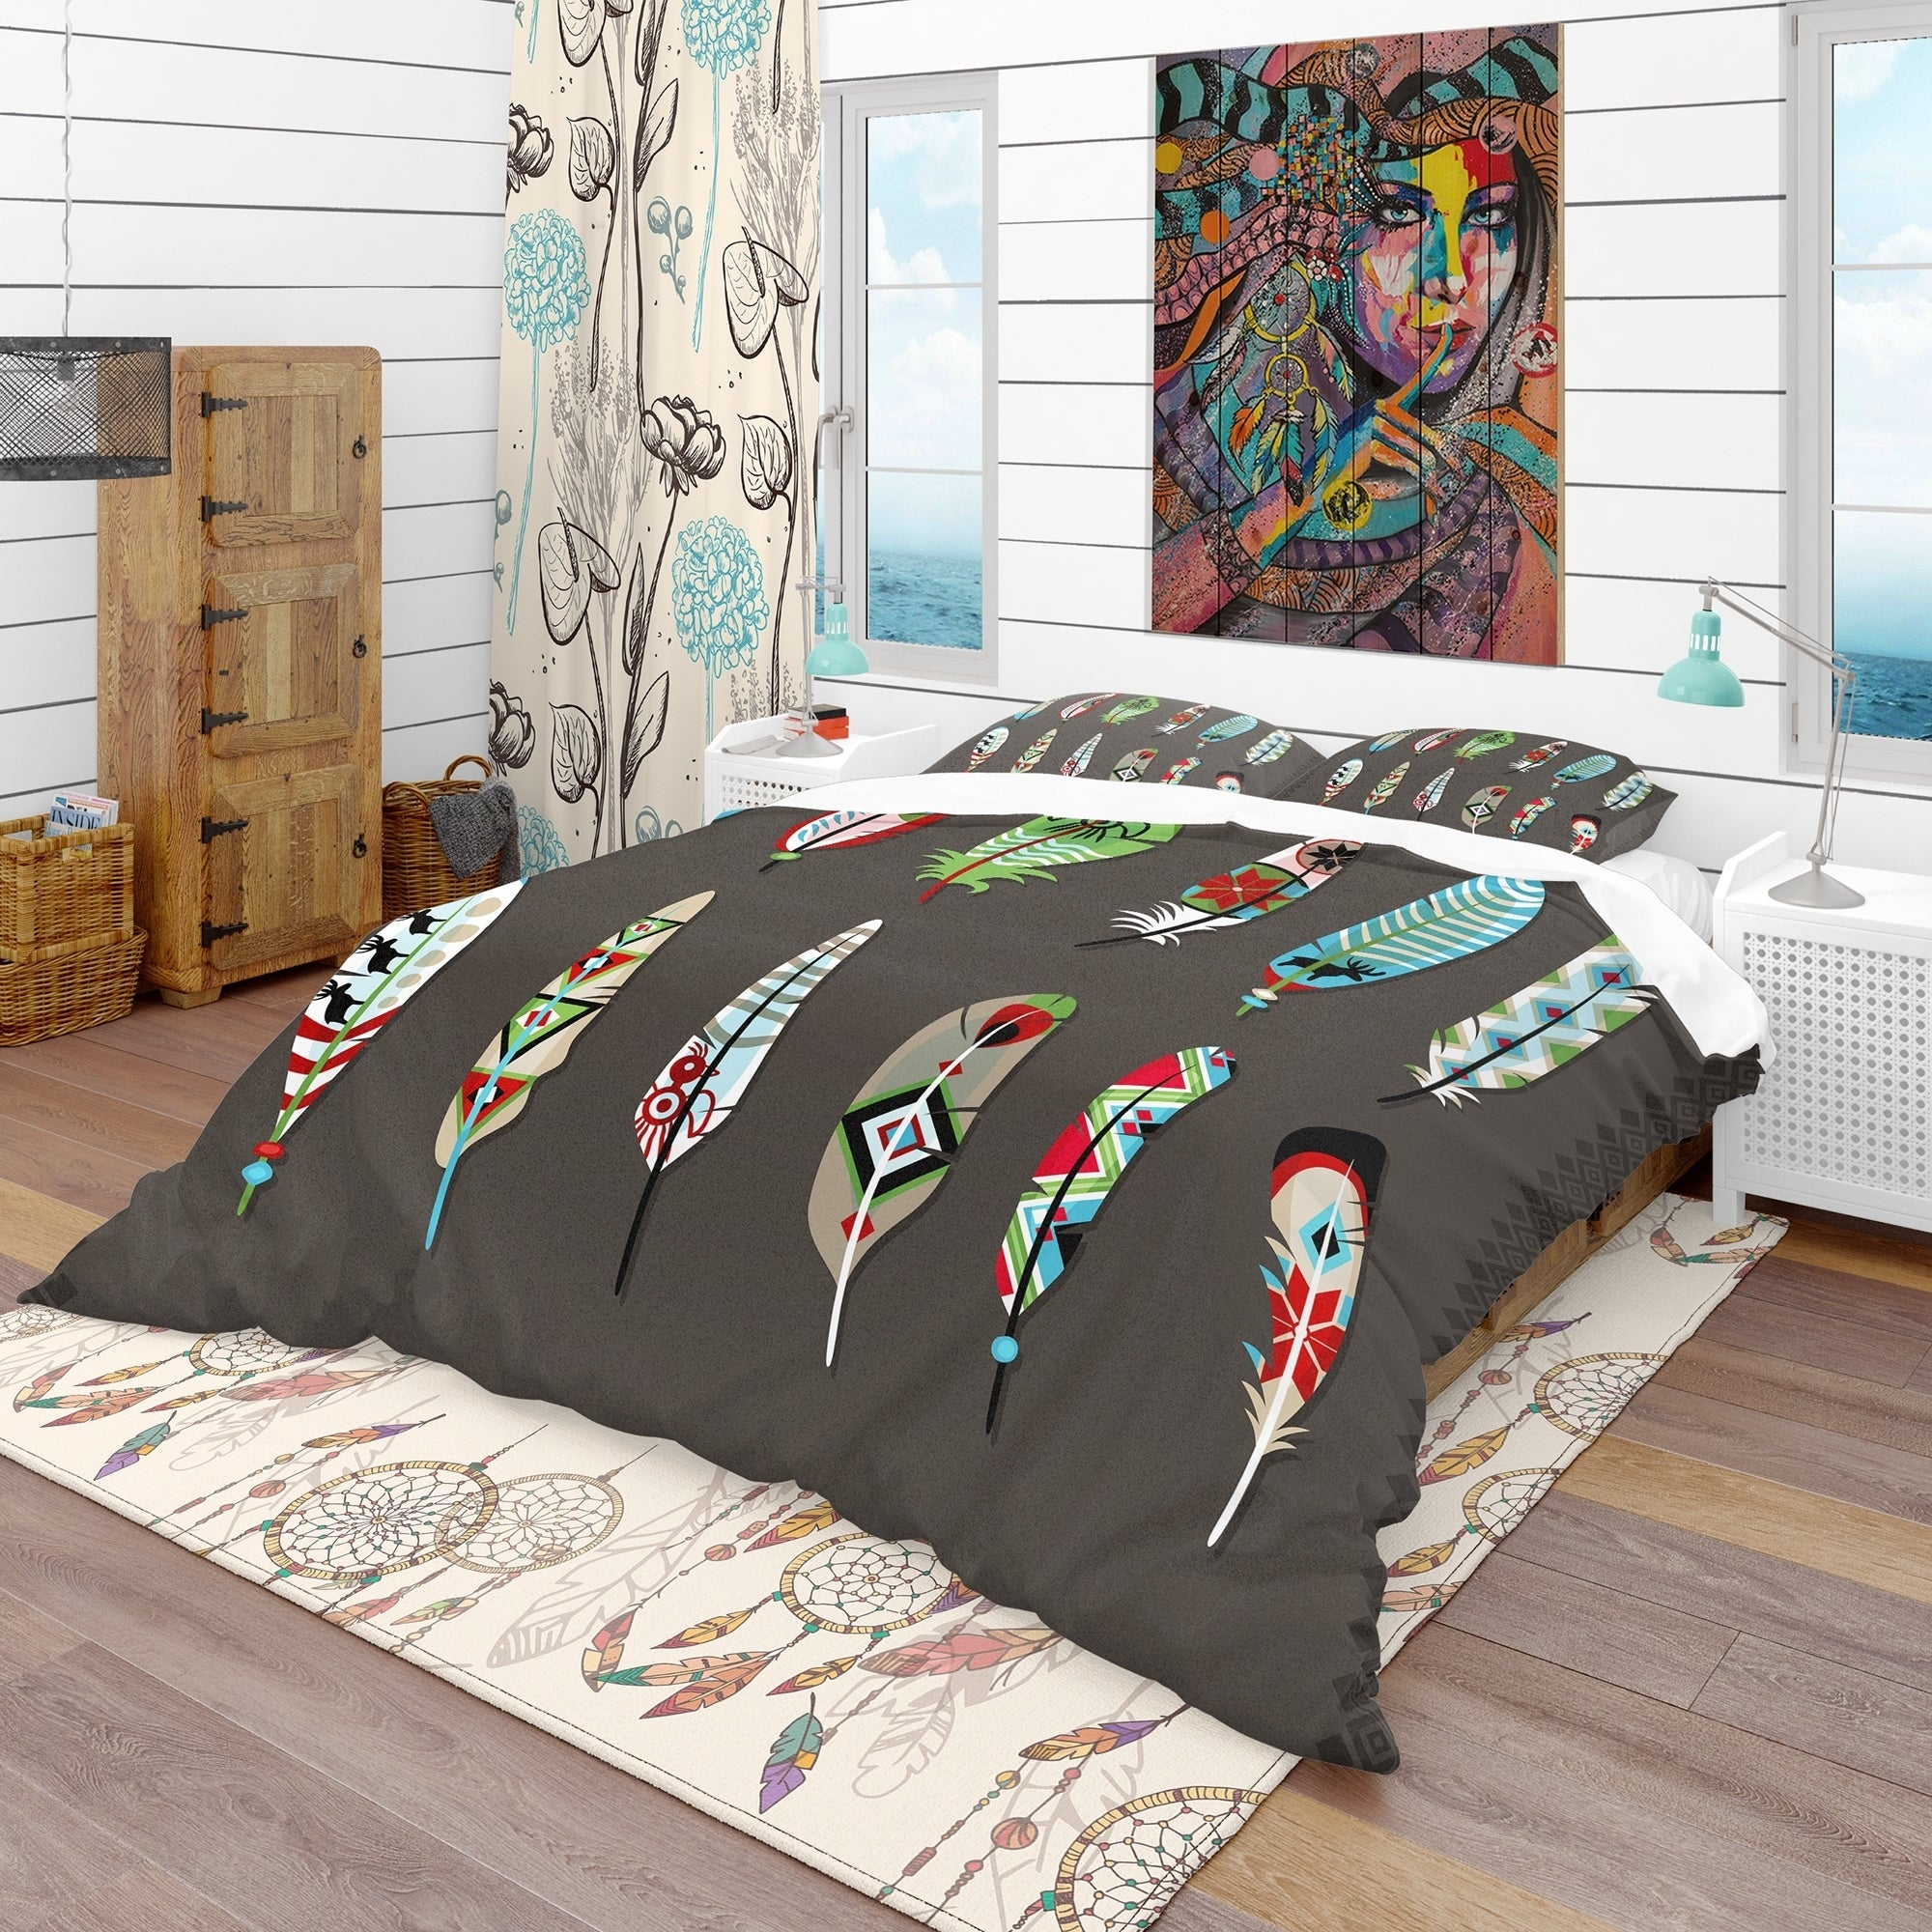 Designart Feathers Painted With Colorful Ethnic Pattern Southwestern Bedding Set Duvet Cover Shams Overstock 23506809